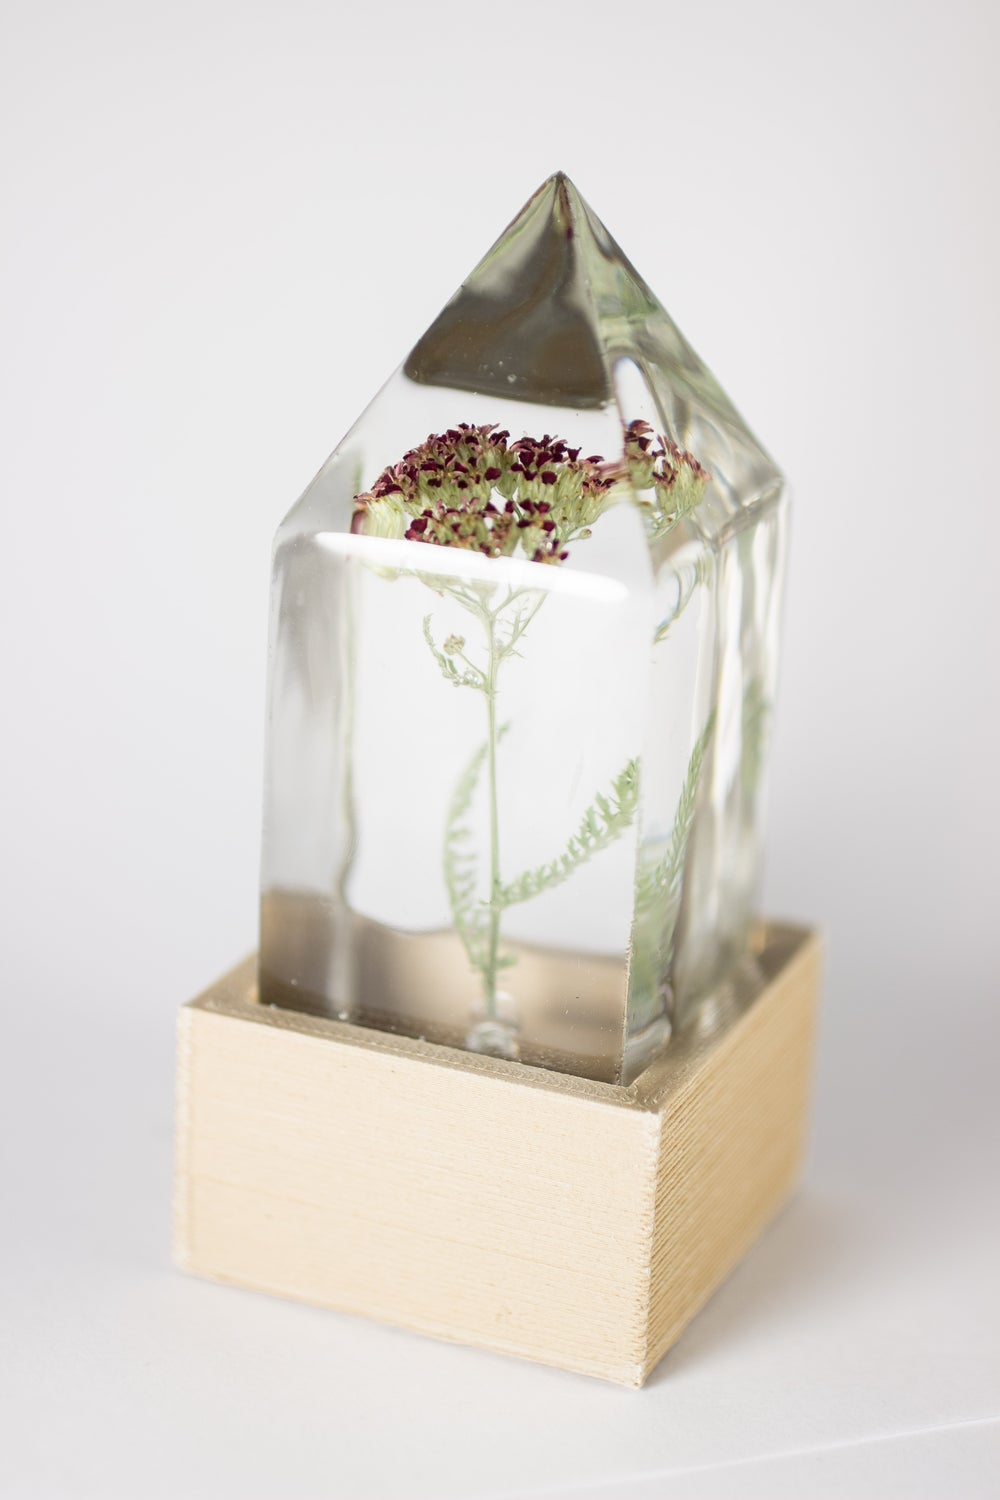 Image of Red Yarrow (Achillea millefolium) - Floral Prism Desk Lamp